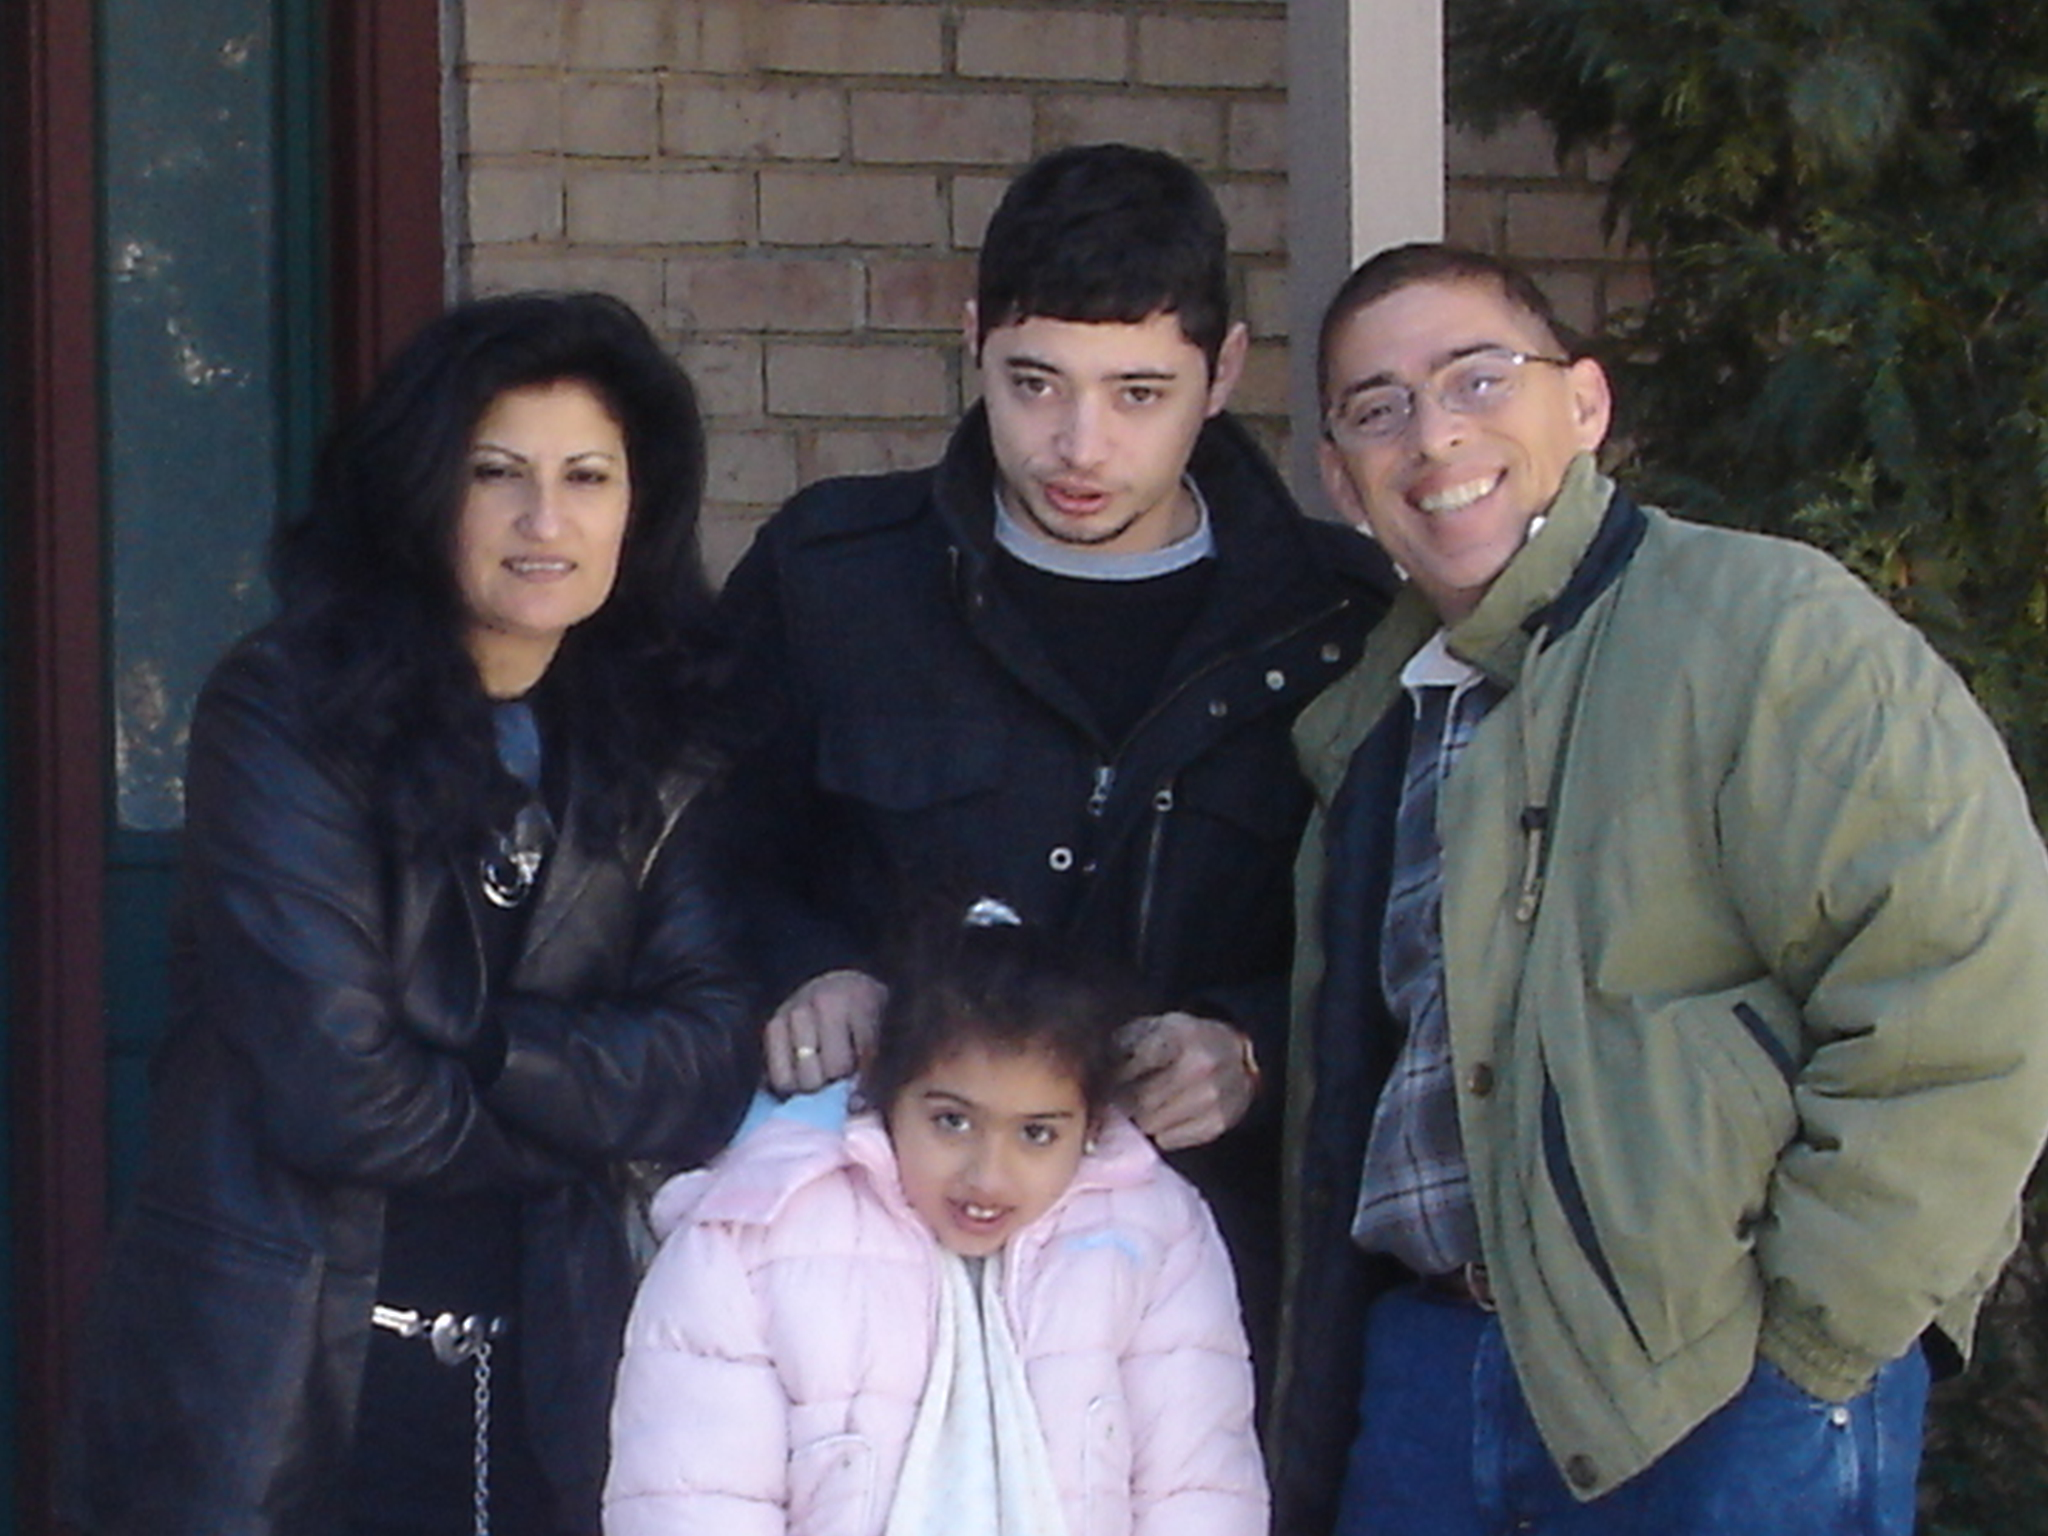 Assia, Jason, Sophia & I in Delaware